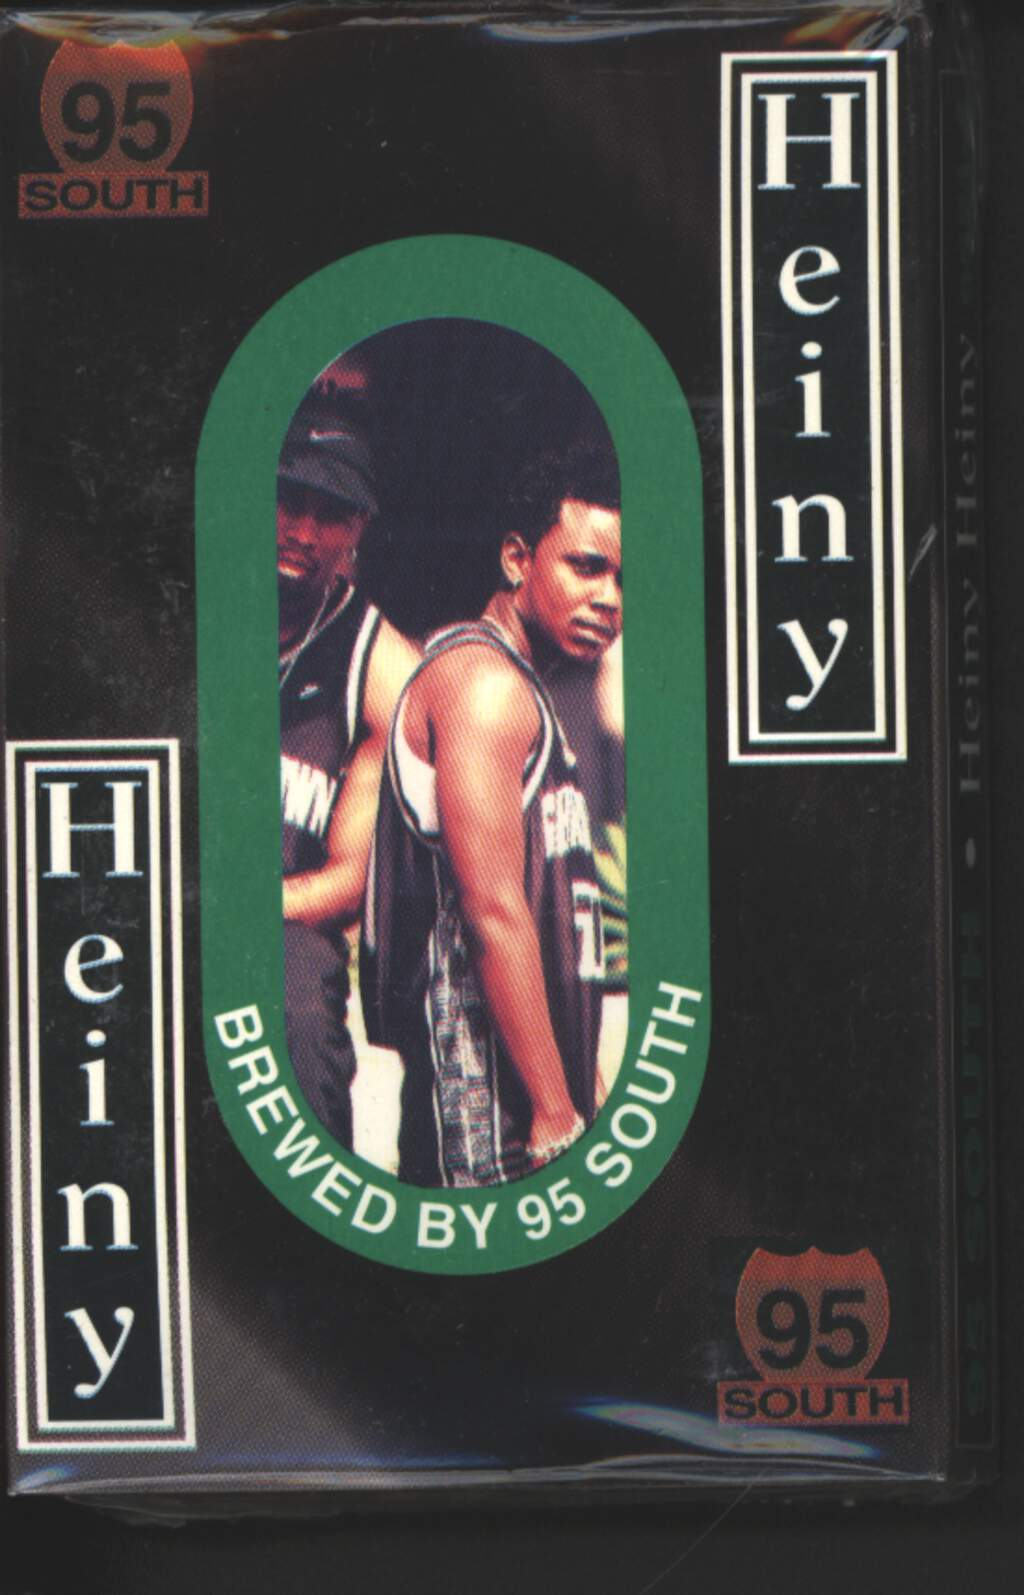 95 South: Heiny Heiny, Tape